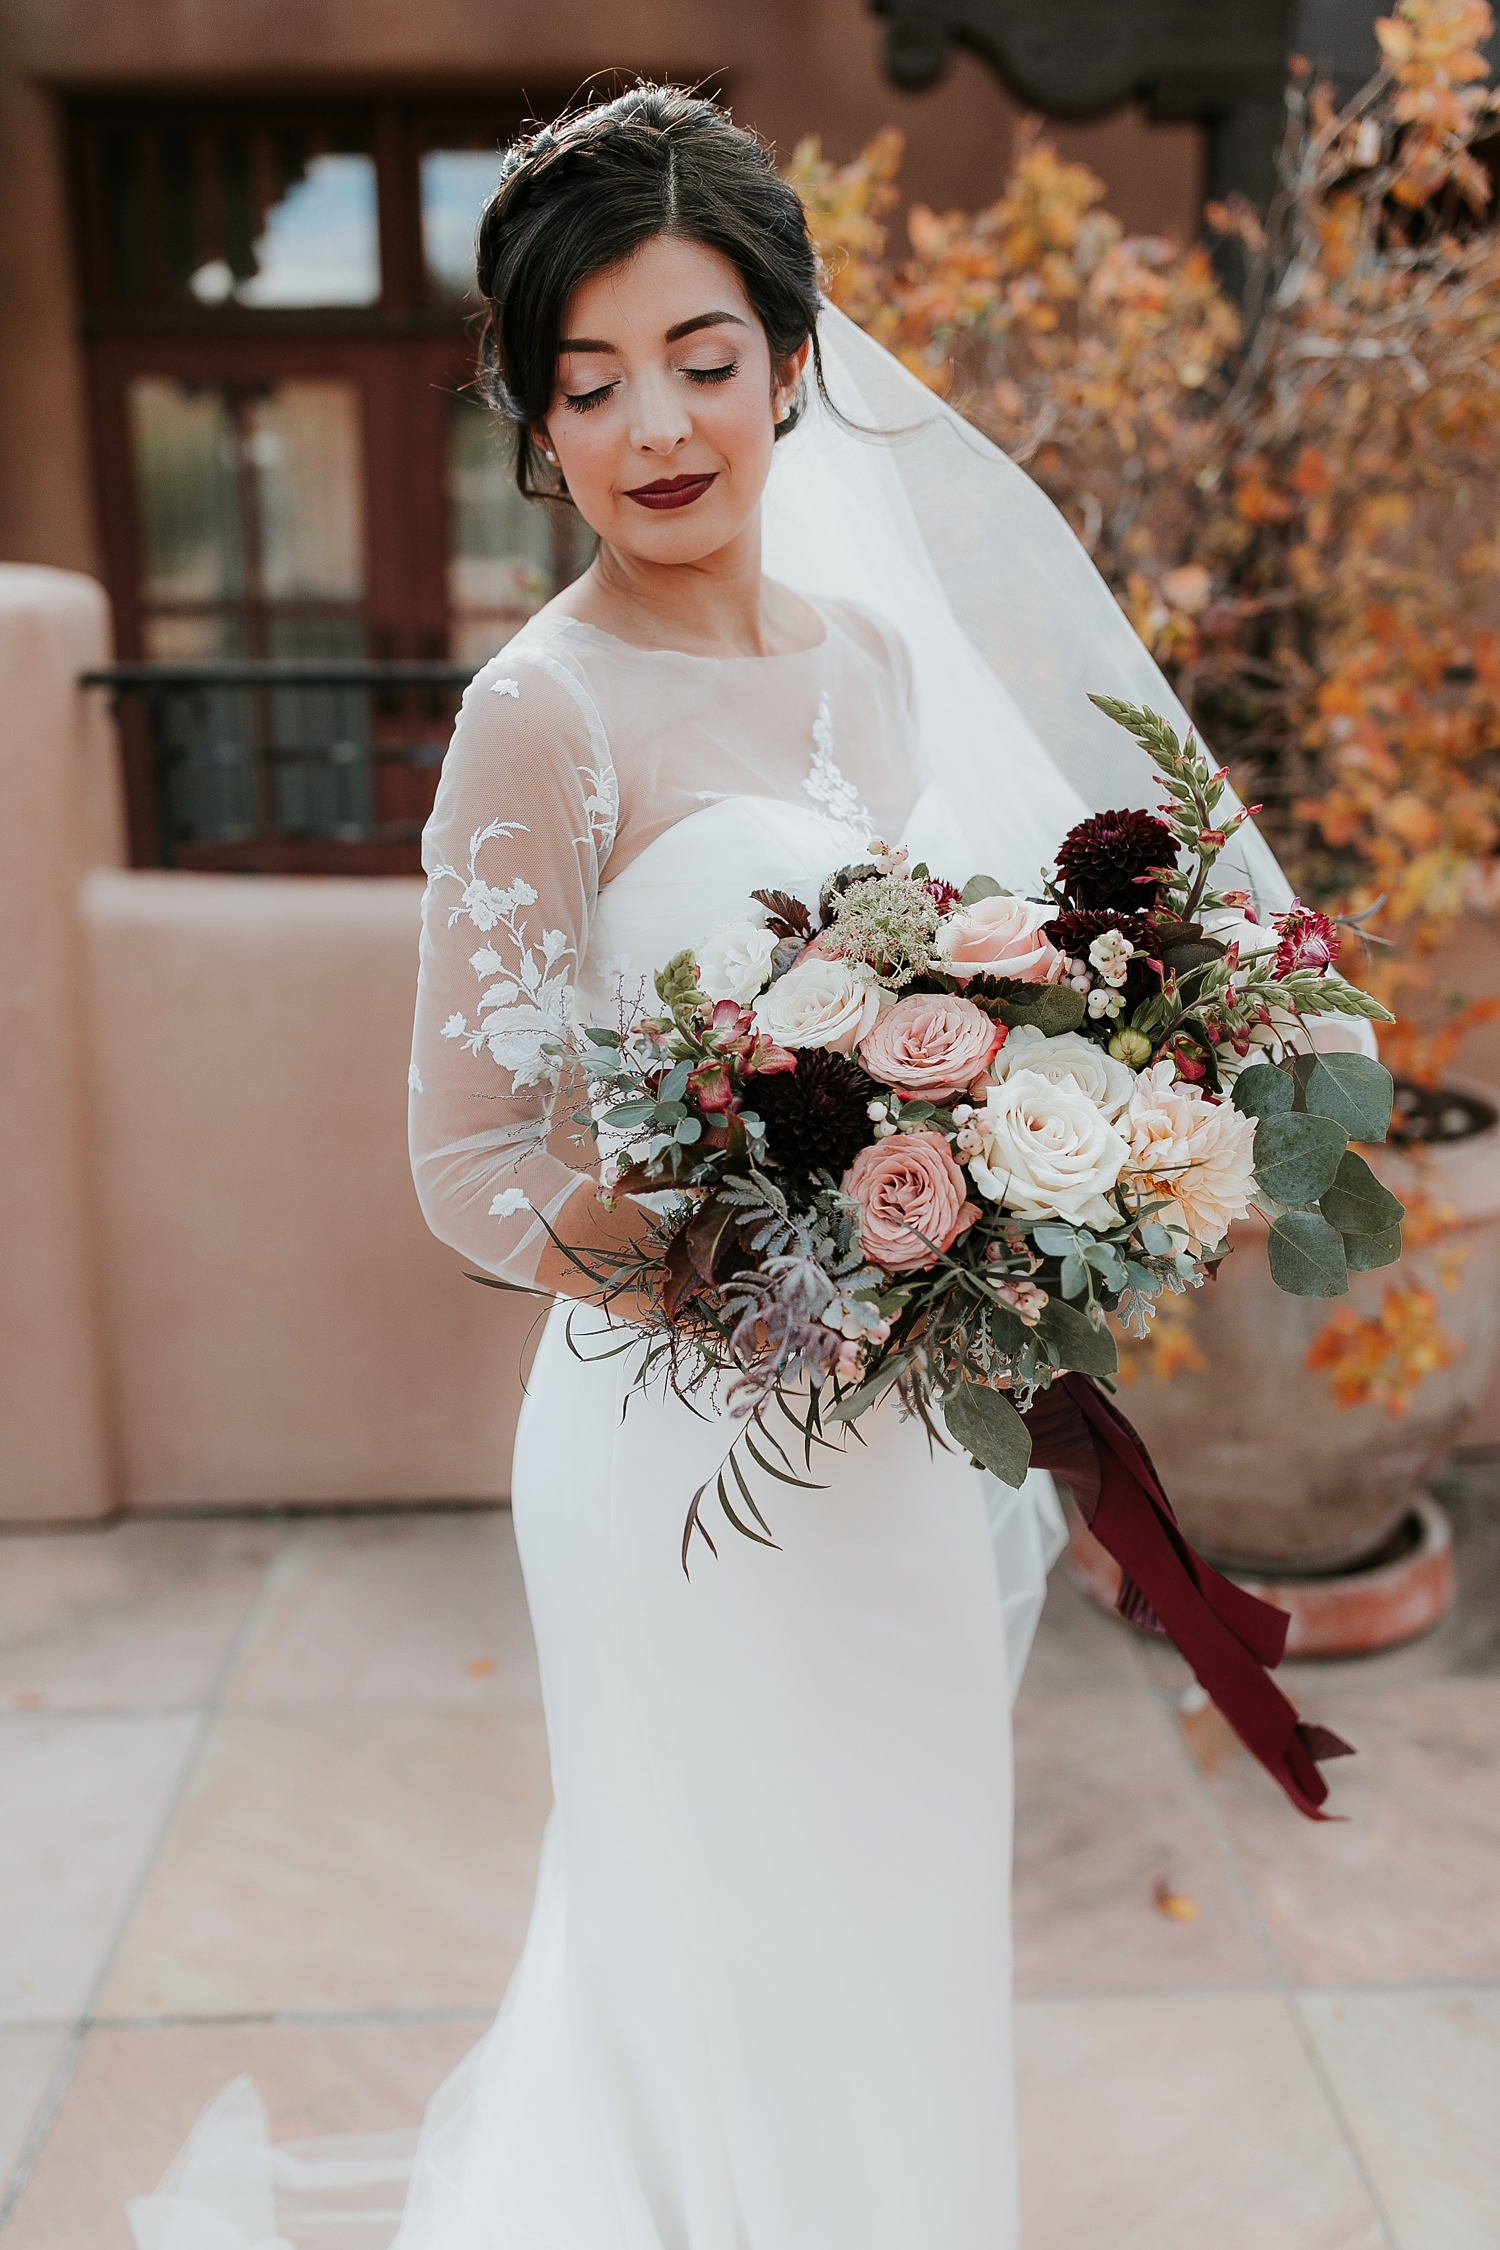 Alicia+lucia+photography+-+albuquerque+wedding+photographer+-+santa+fe+wedding+photography+-+new+mexico+wedding+photographer+-+la+fonda+santa+fe+wedding+-+santa+fe+fall+wedding+-+la+fonda+fall+wedding_0020.jpg